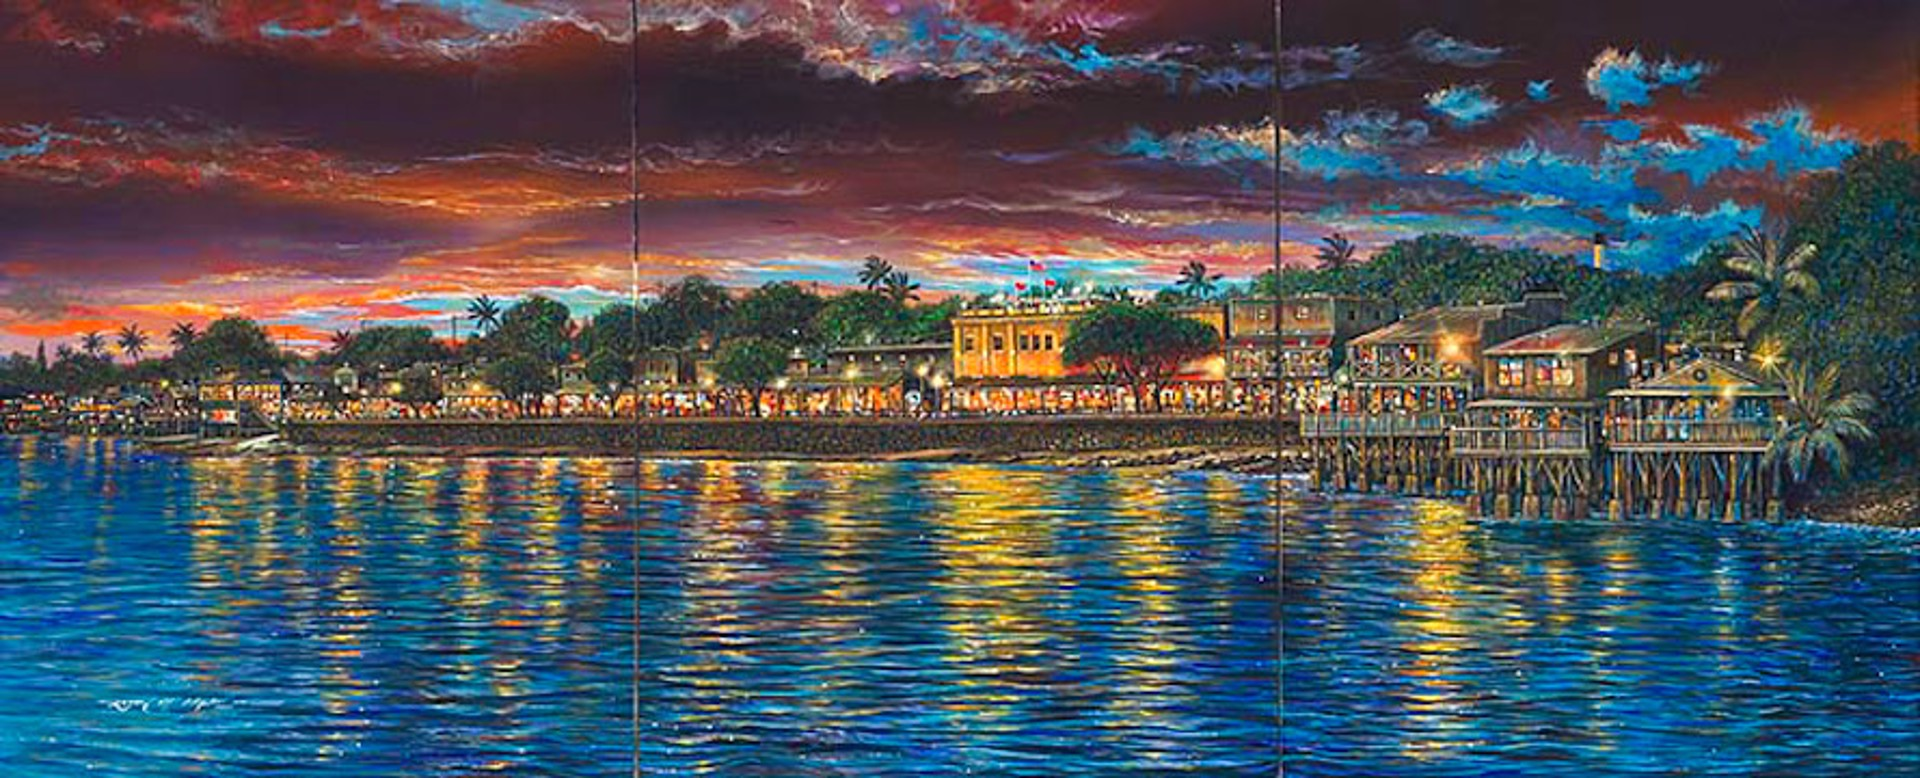 Lahaina Amore (T) by Robert Lyn Nelson